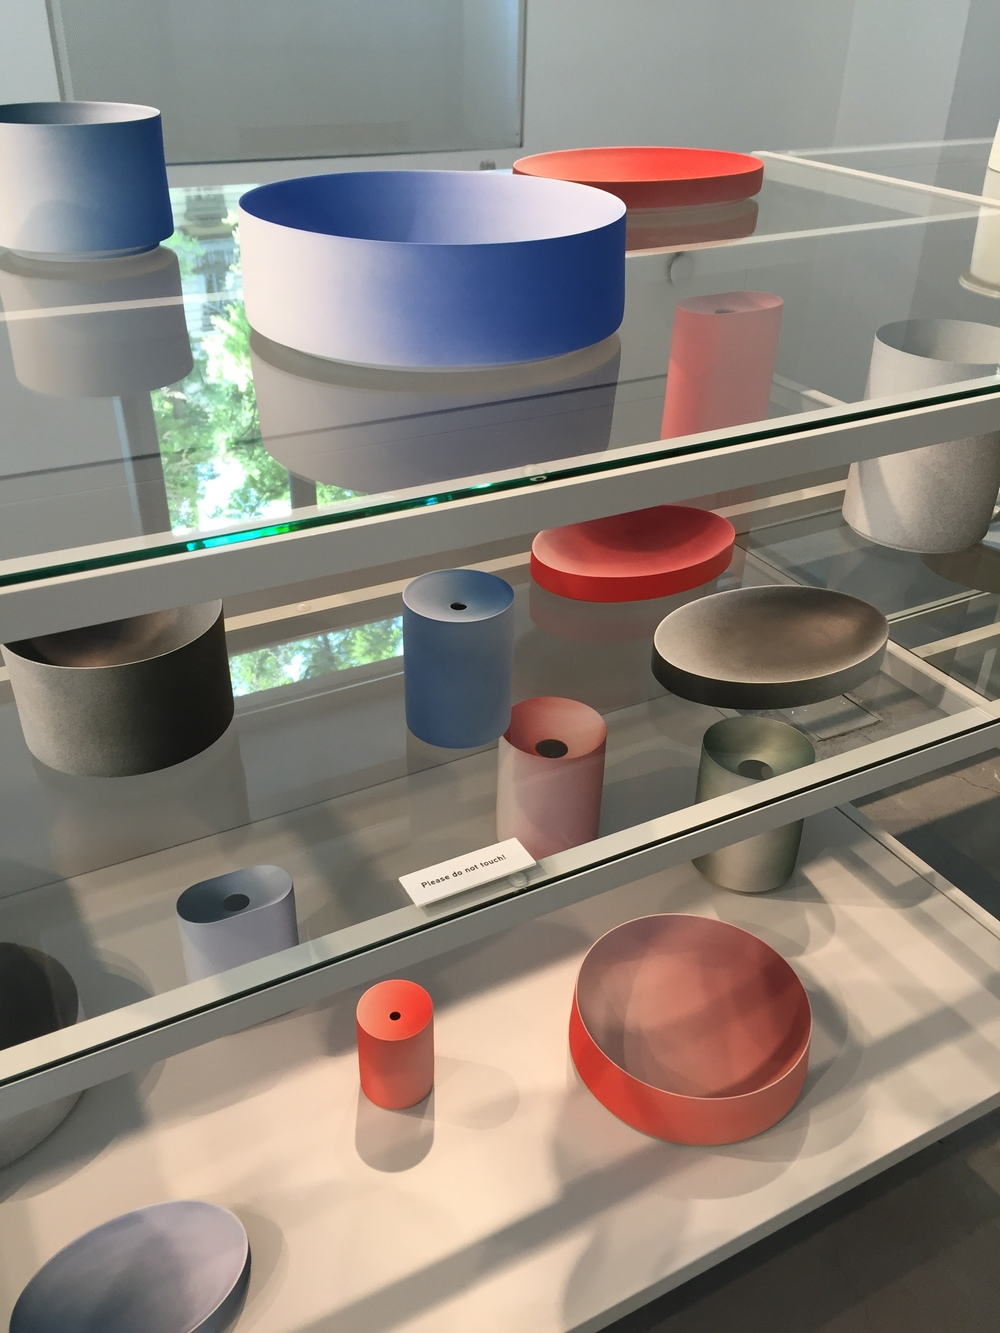 Stunning ceramics by Kueng Caputo created using a specialist technique of airbrush painting called 'fukitsuke' which allows for soft gradients of colour and texture to be applied to the surface. Part of an exhibition to celebrate and promote the 400 year old history of ceramics from  Arita, Japan  organised in partnership with  Scholten and Baijings  among others.